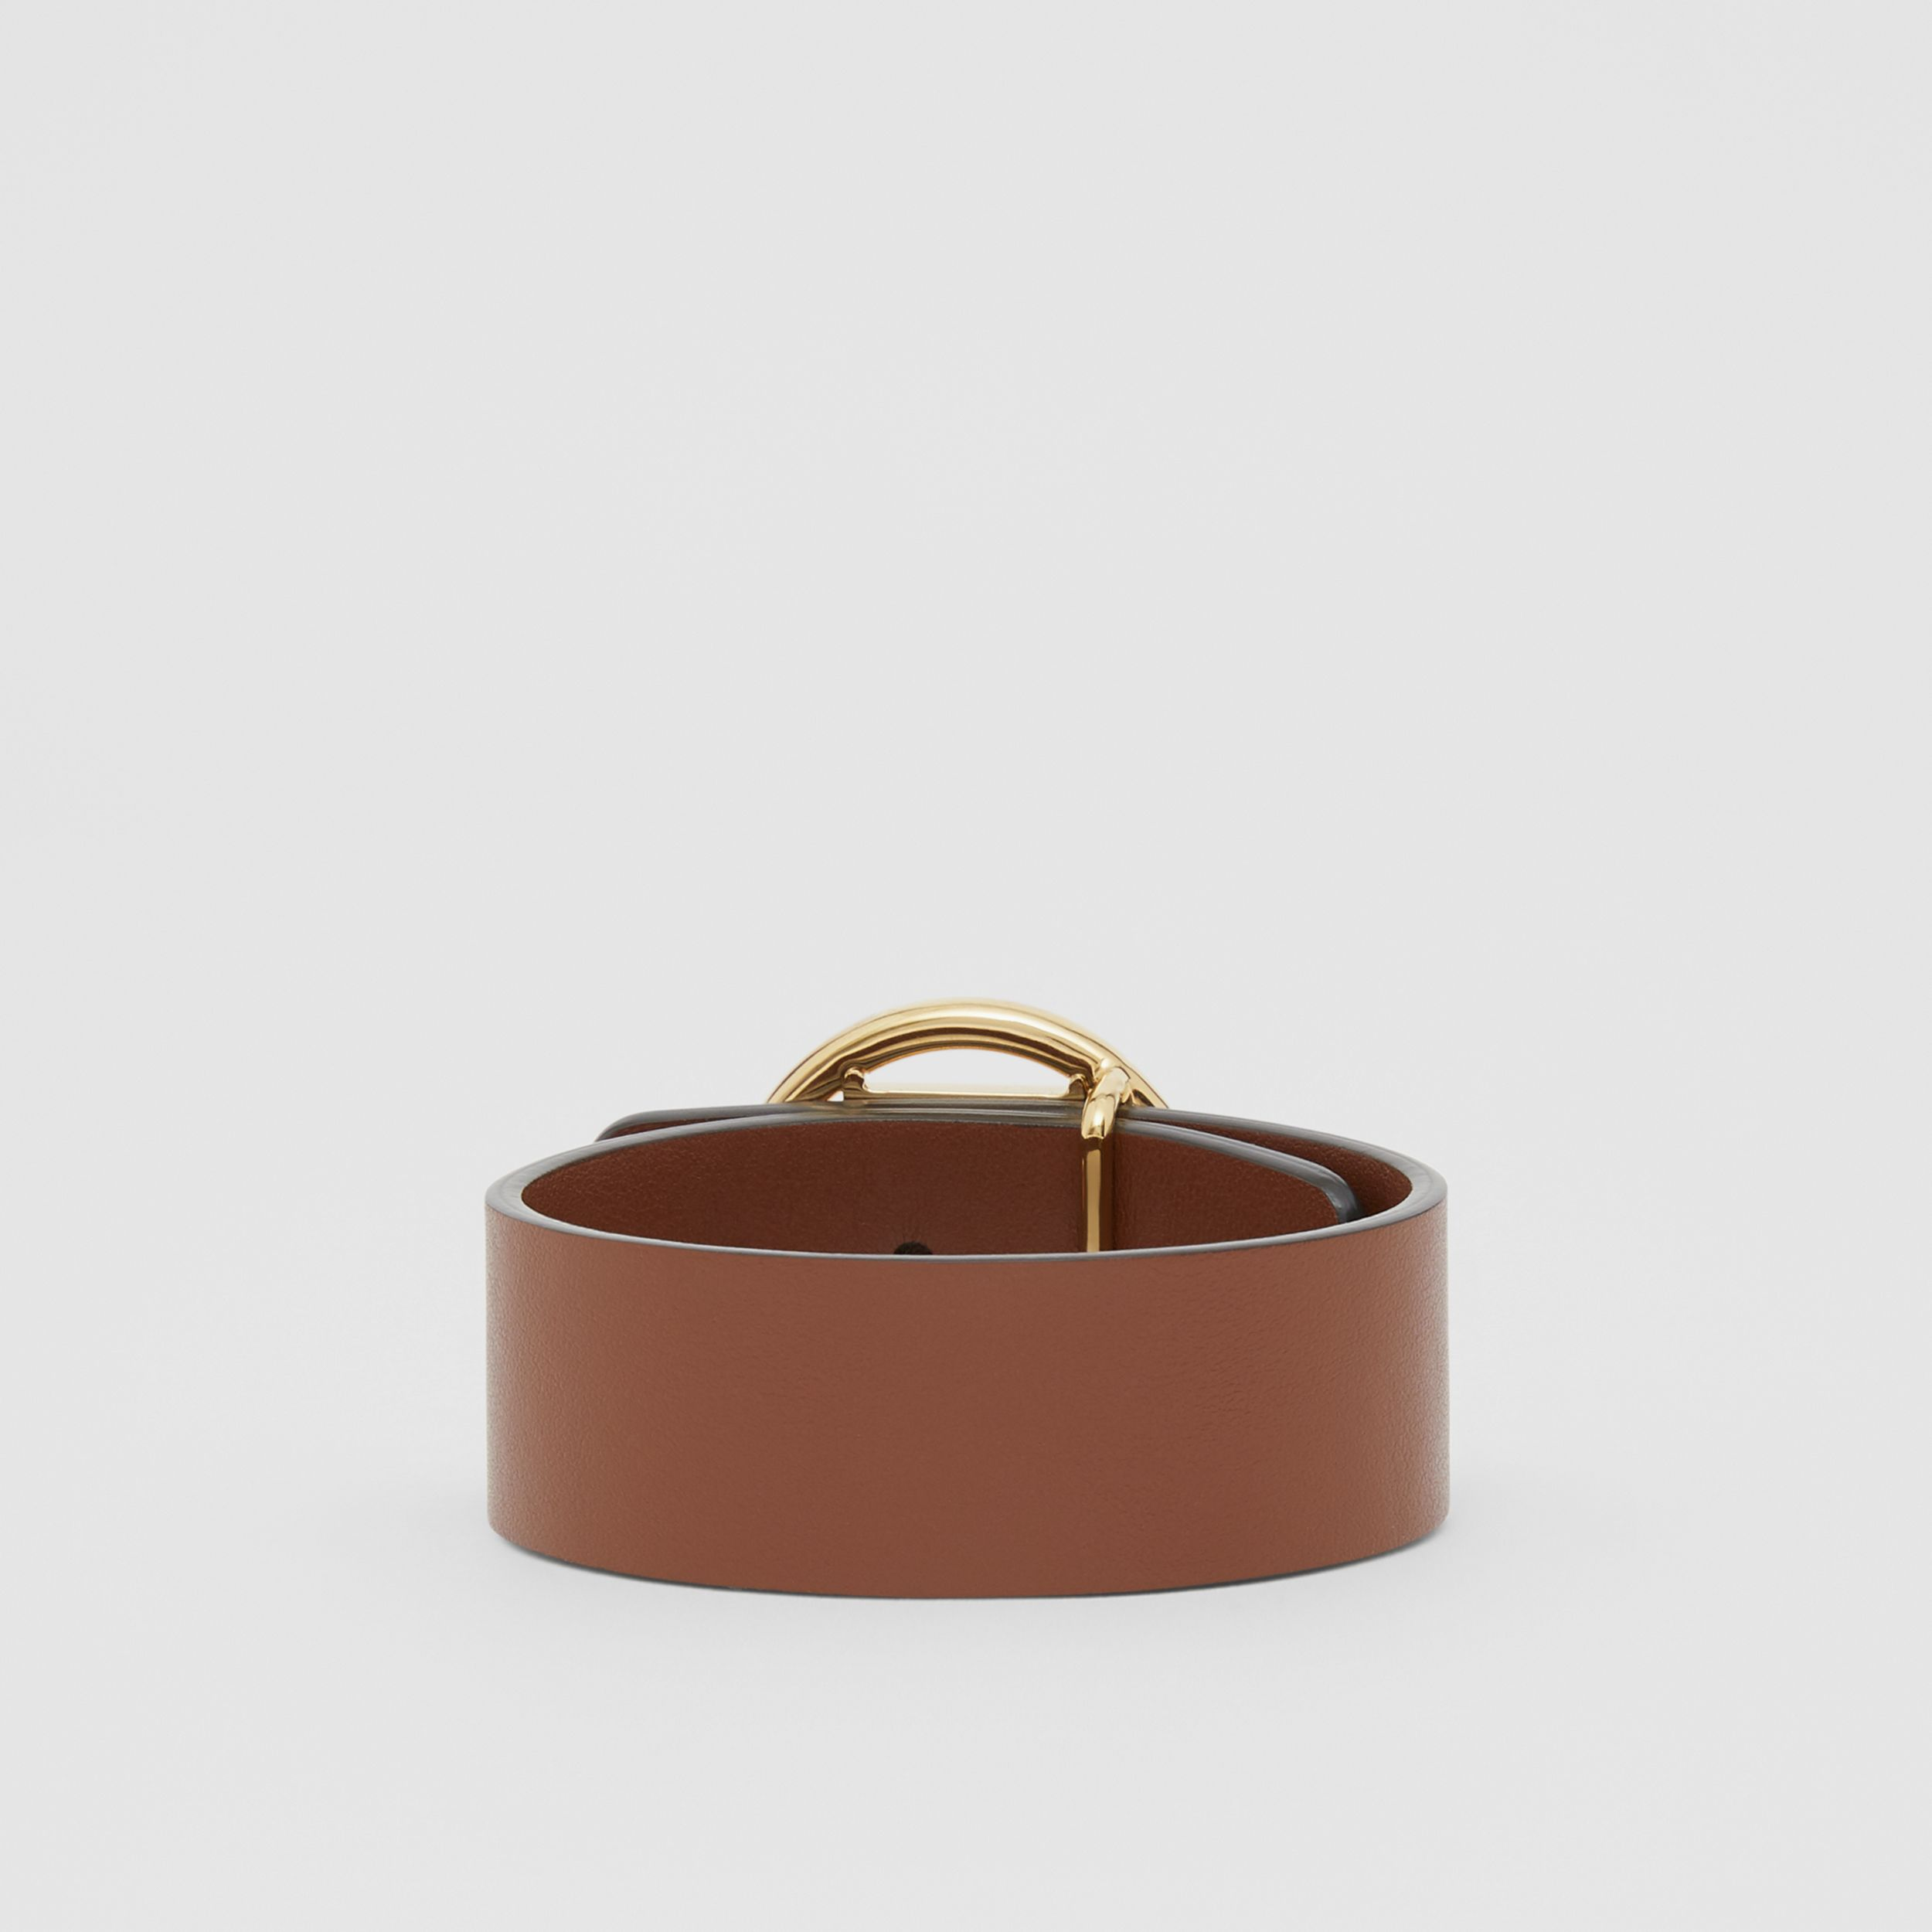 Monogram Motif Leather Bracelet in Tan | Burberry - 3